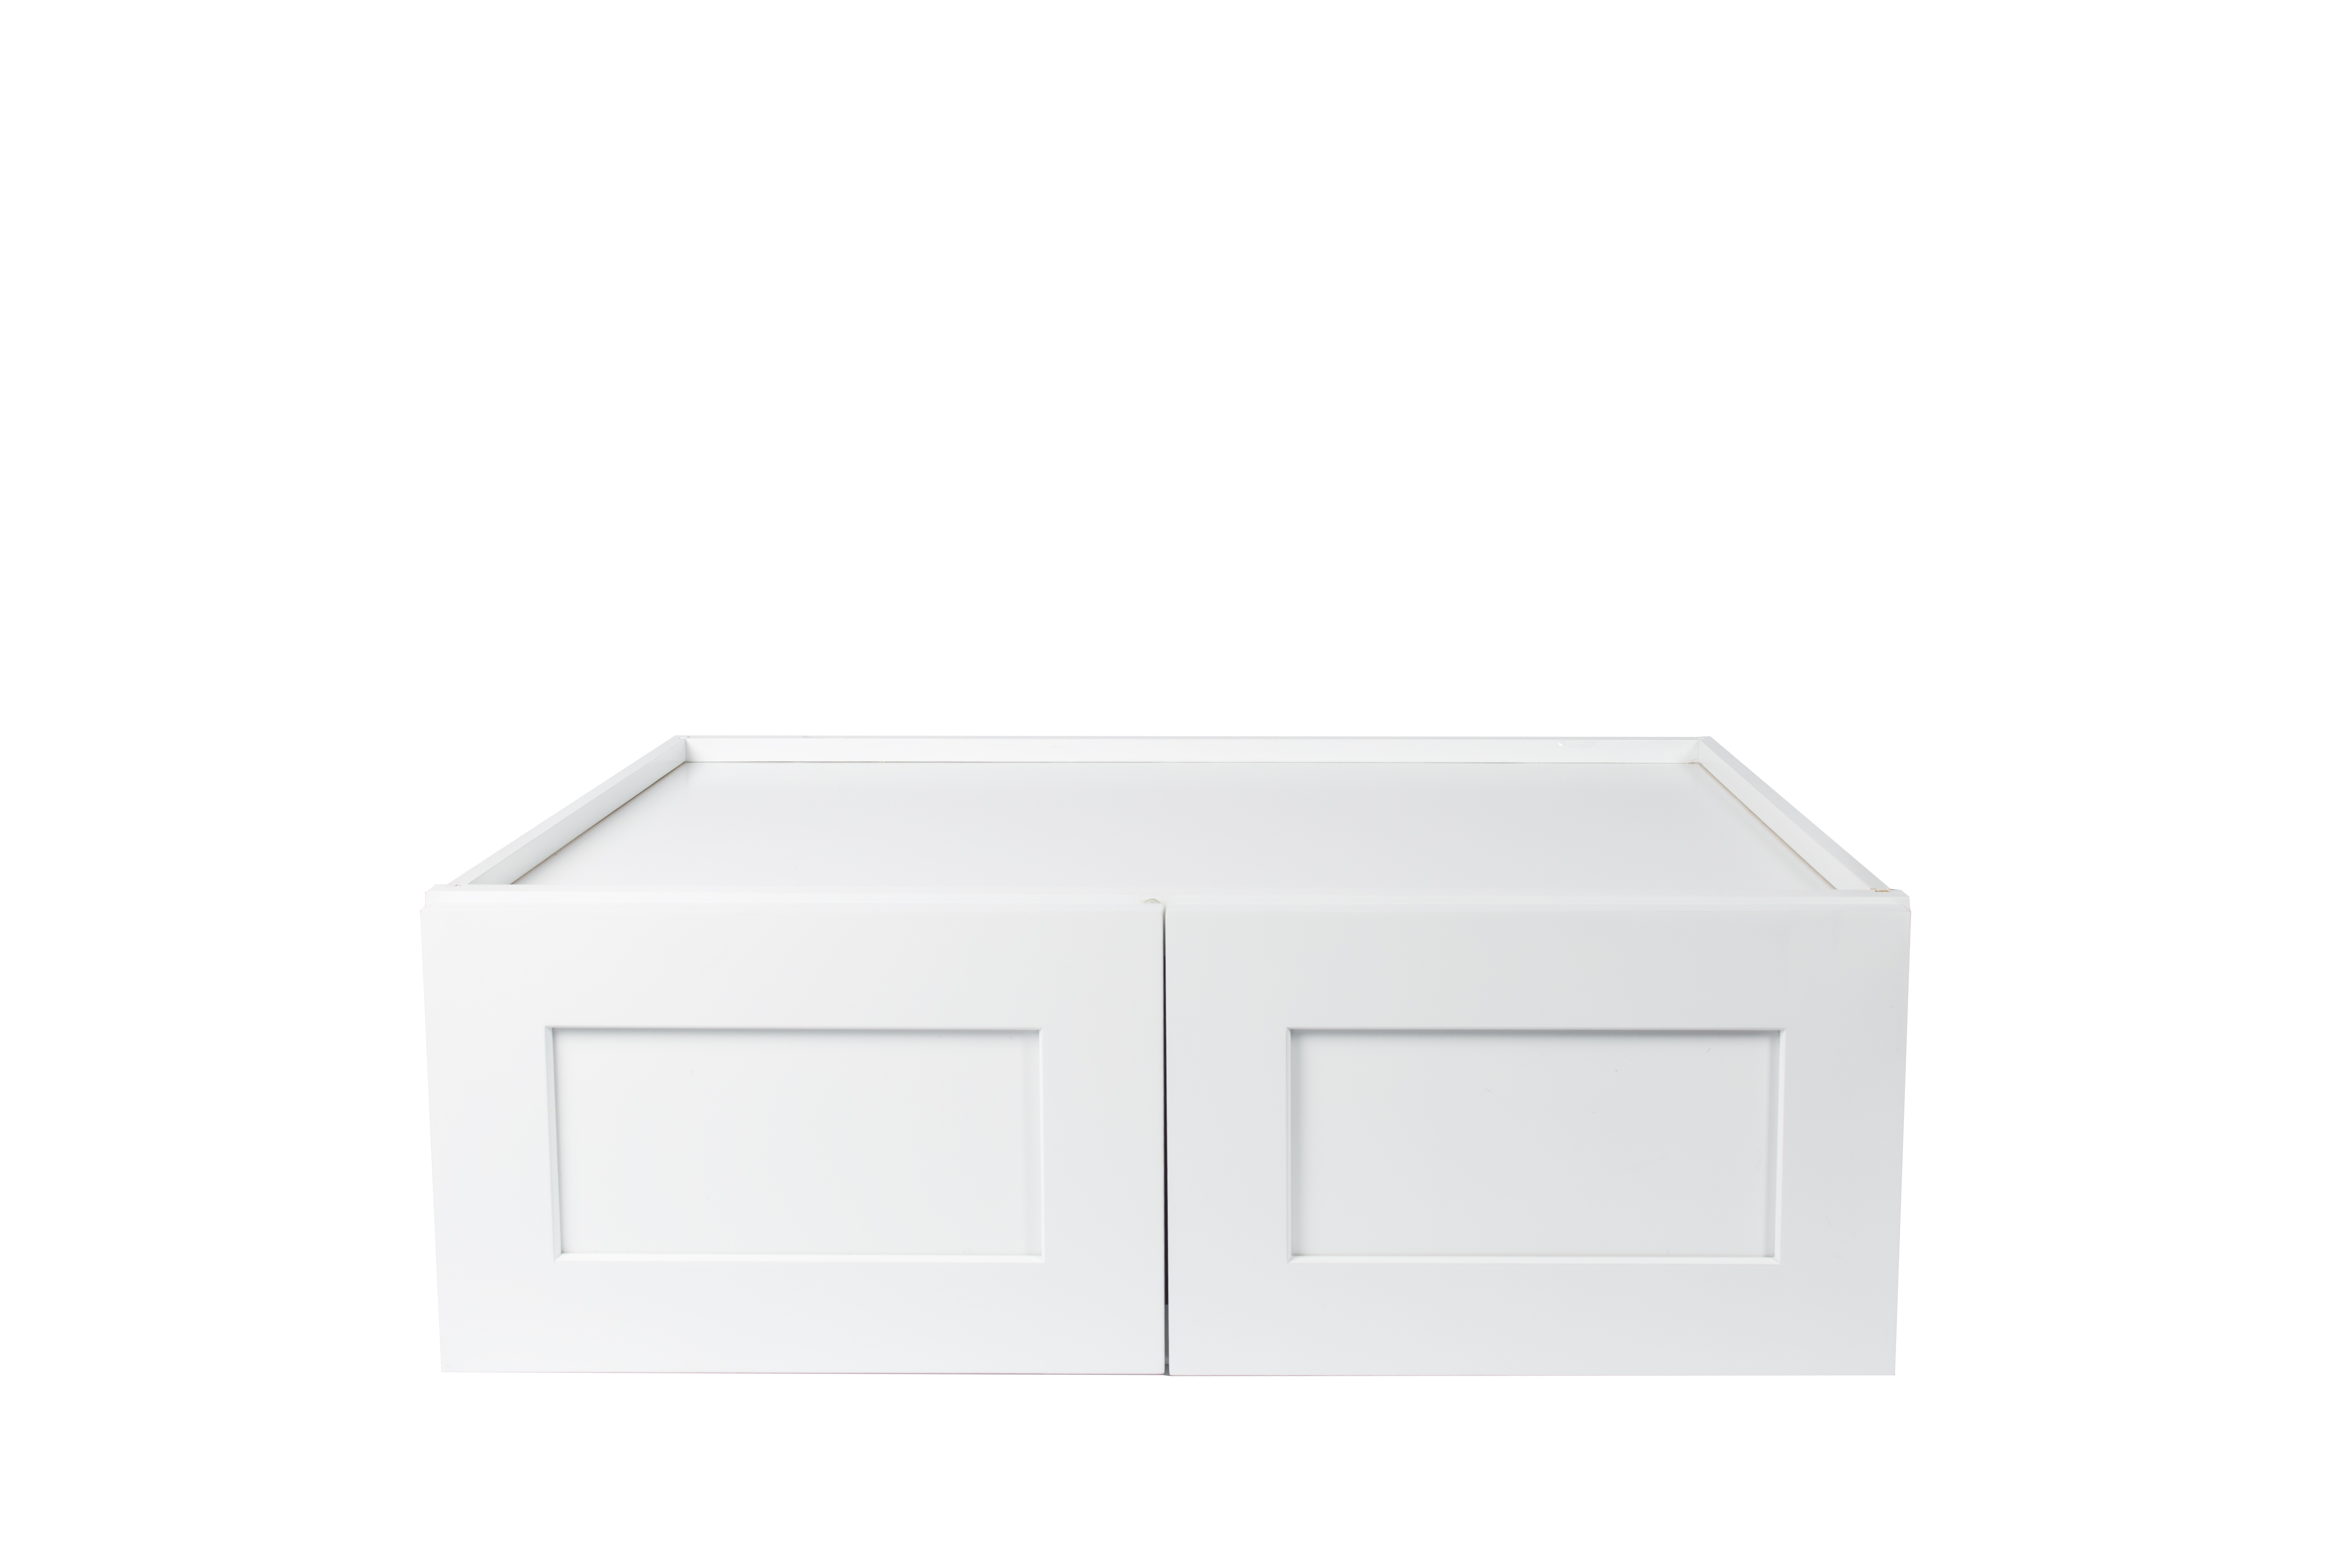 Ready to Assemble 30x18x24 in. Shaker High Double Door Wall Cabinet in White